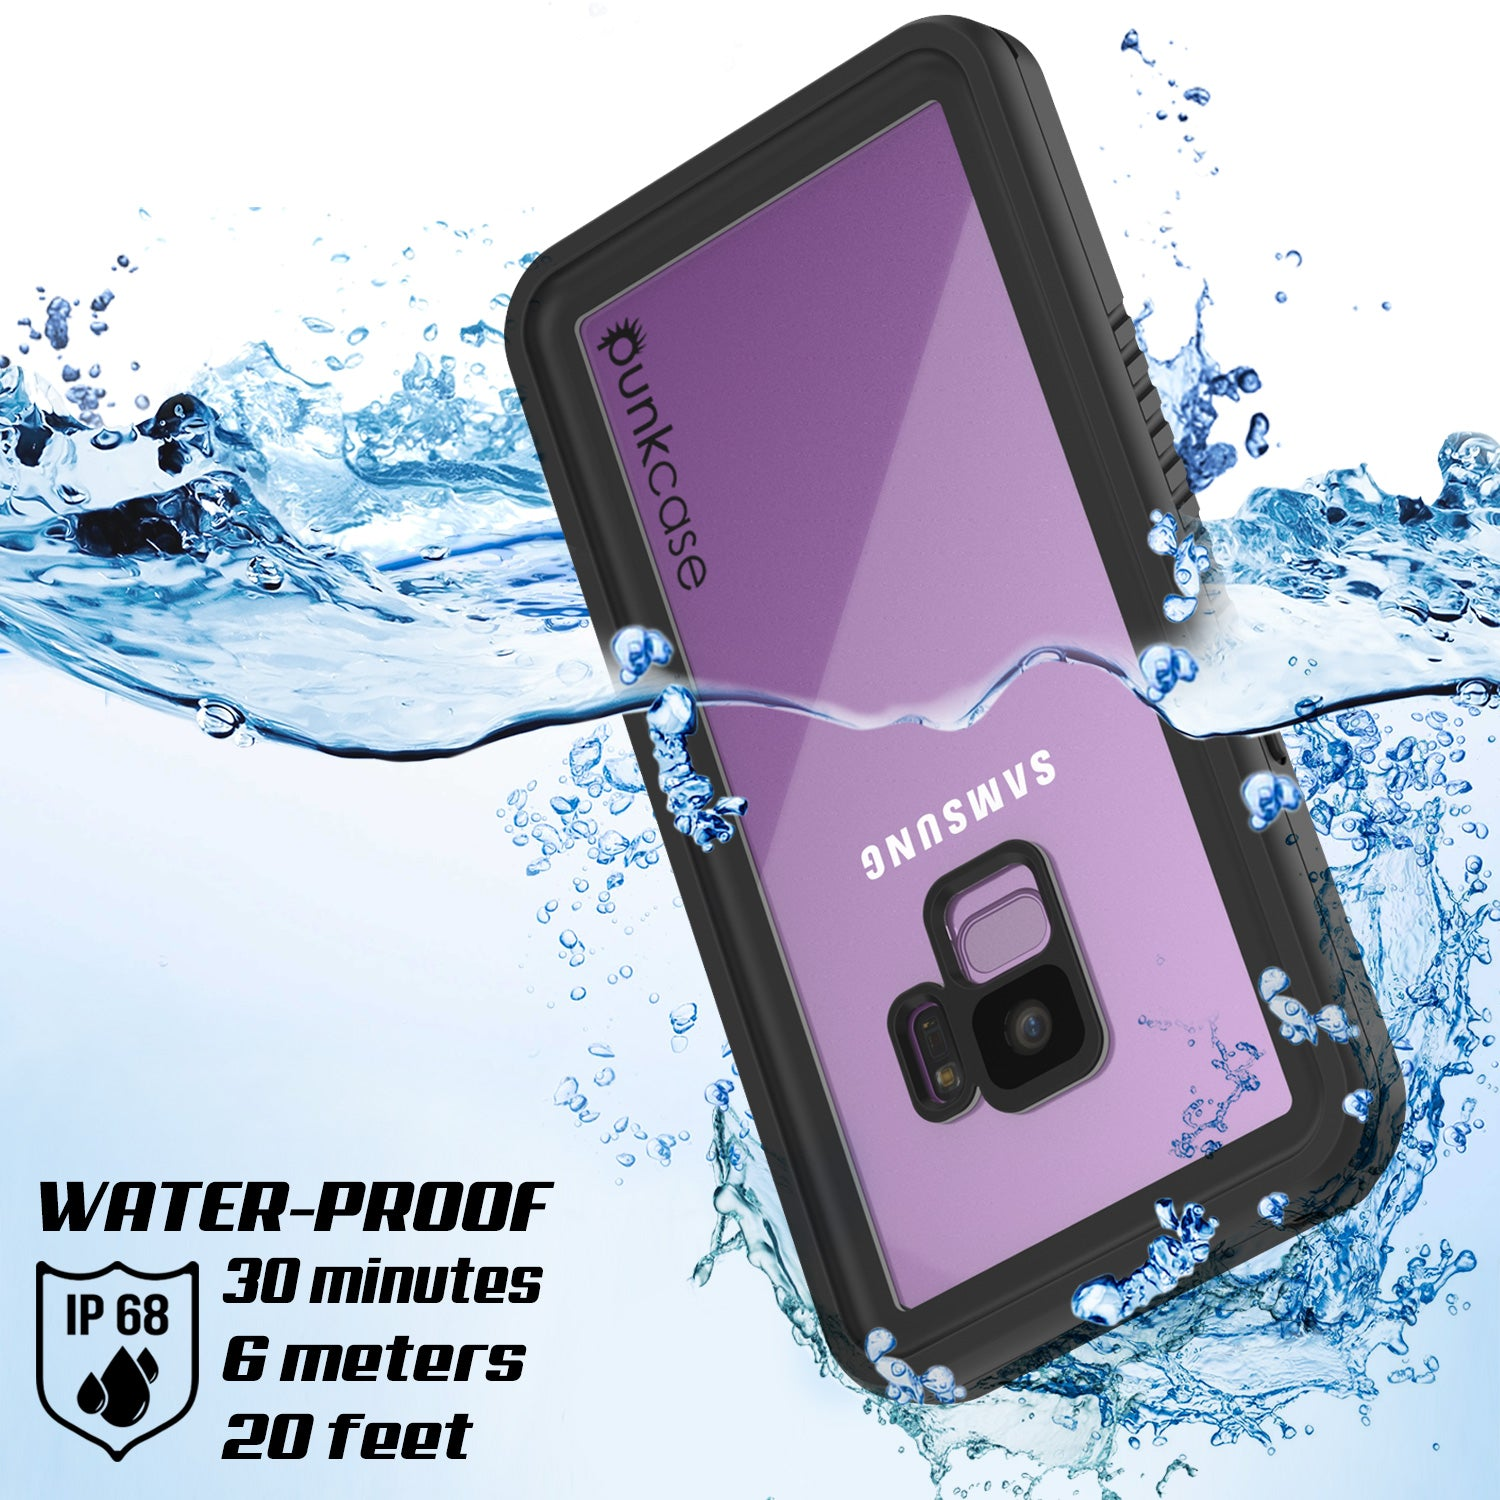 Punkcase Galaxy S9 Extreme Series Waterproof Body | Teal